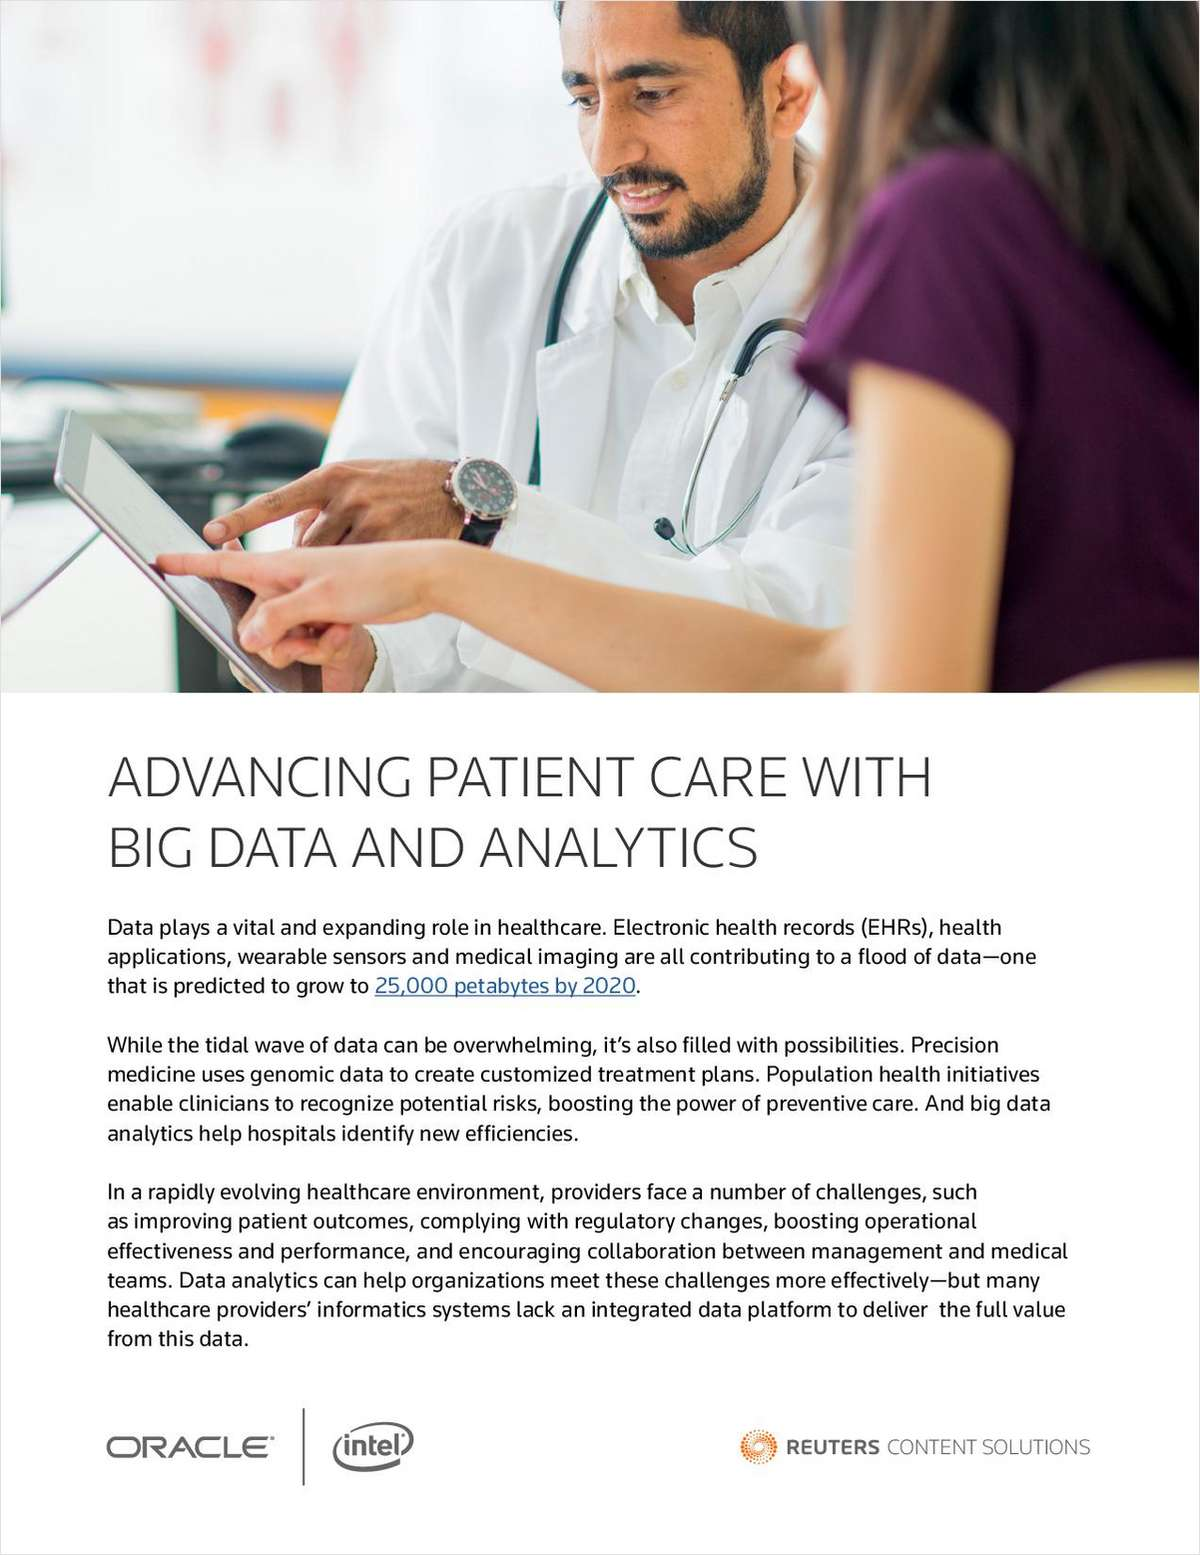 Advancing Patient Care with Big Data and Analytics